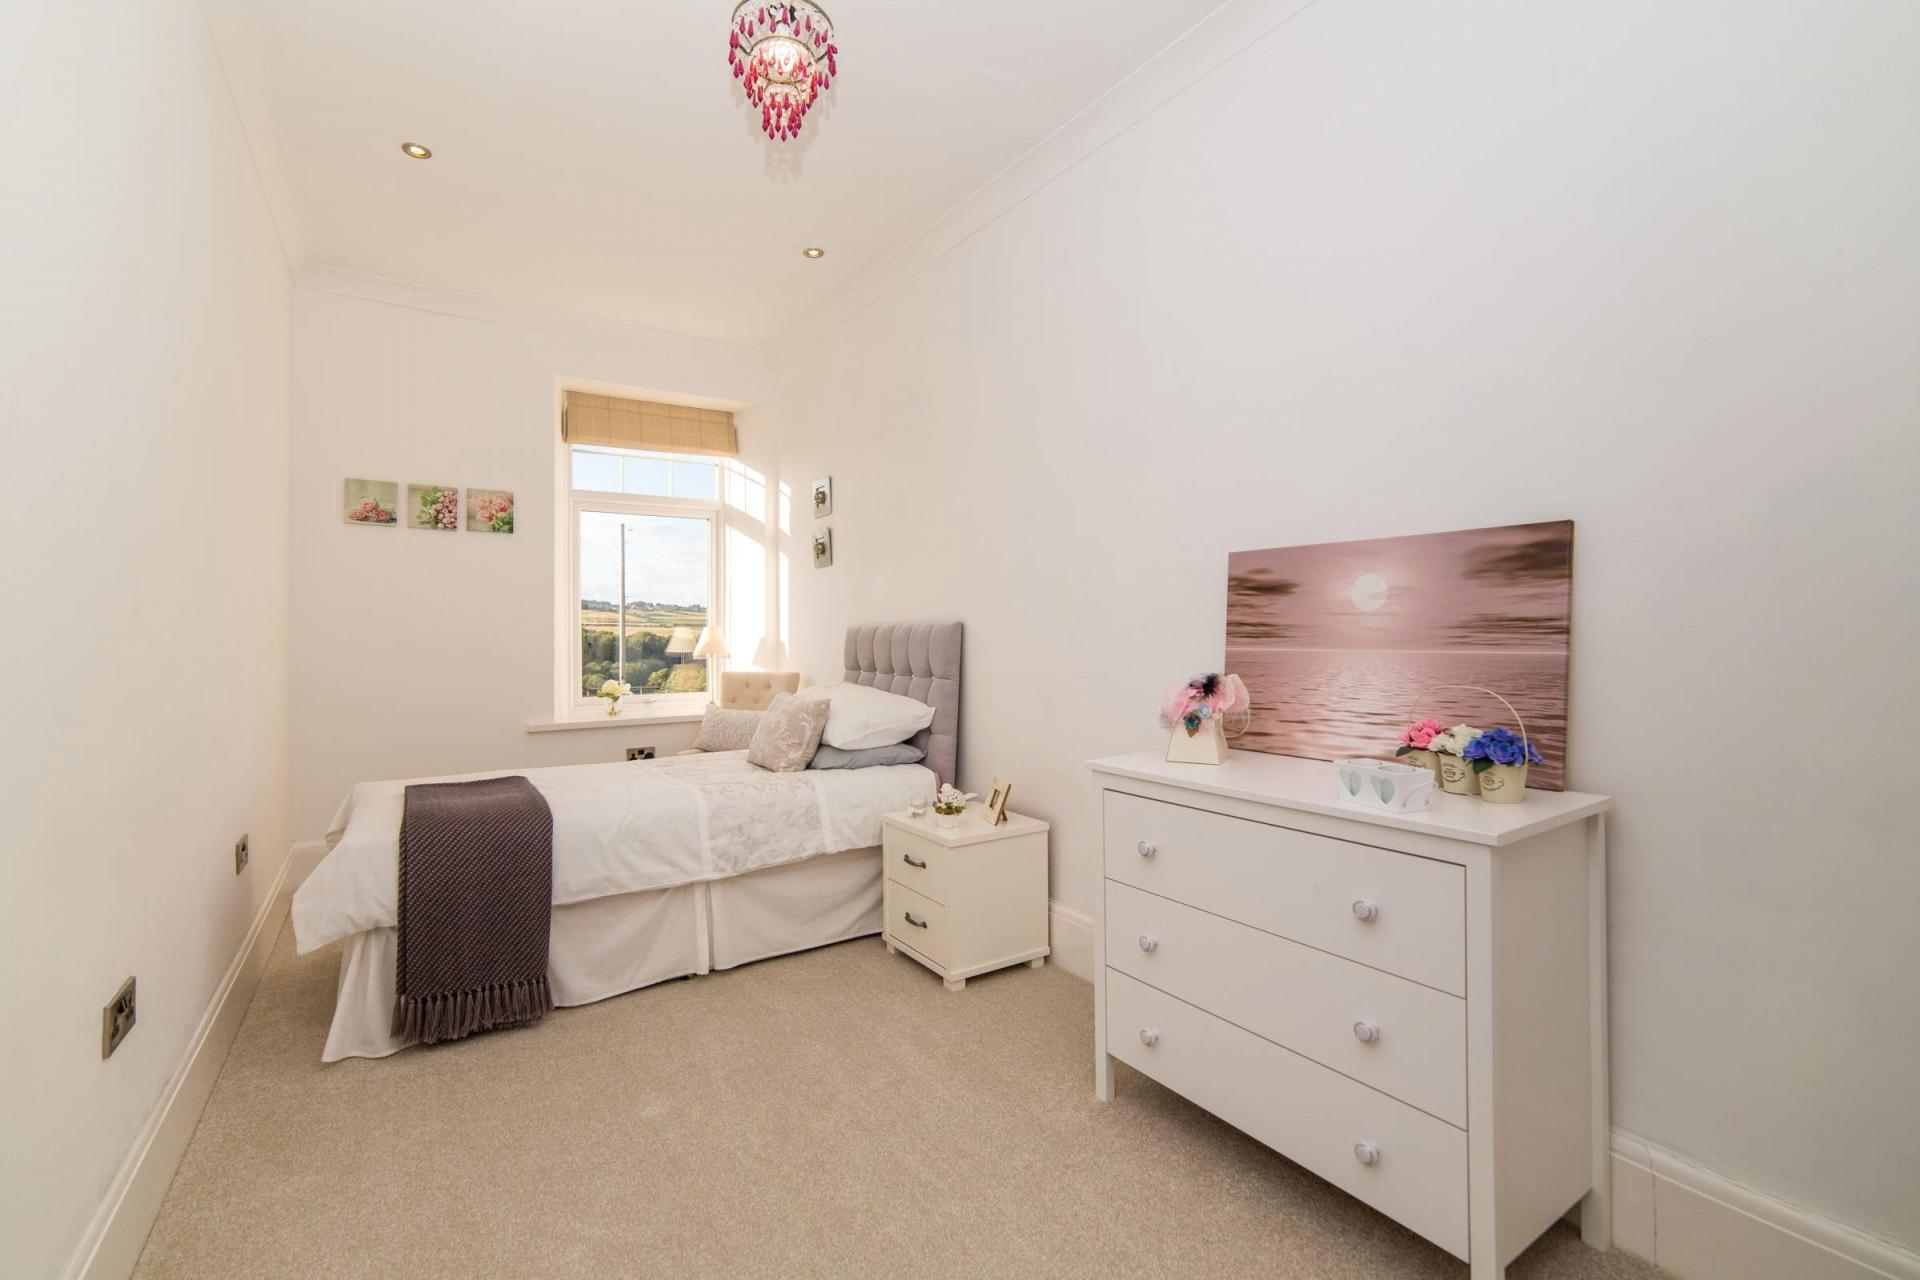 4 Bedroom House For Sale In County Durham